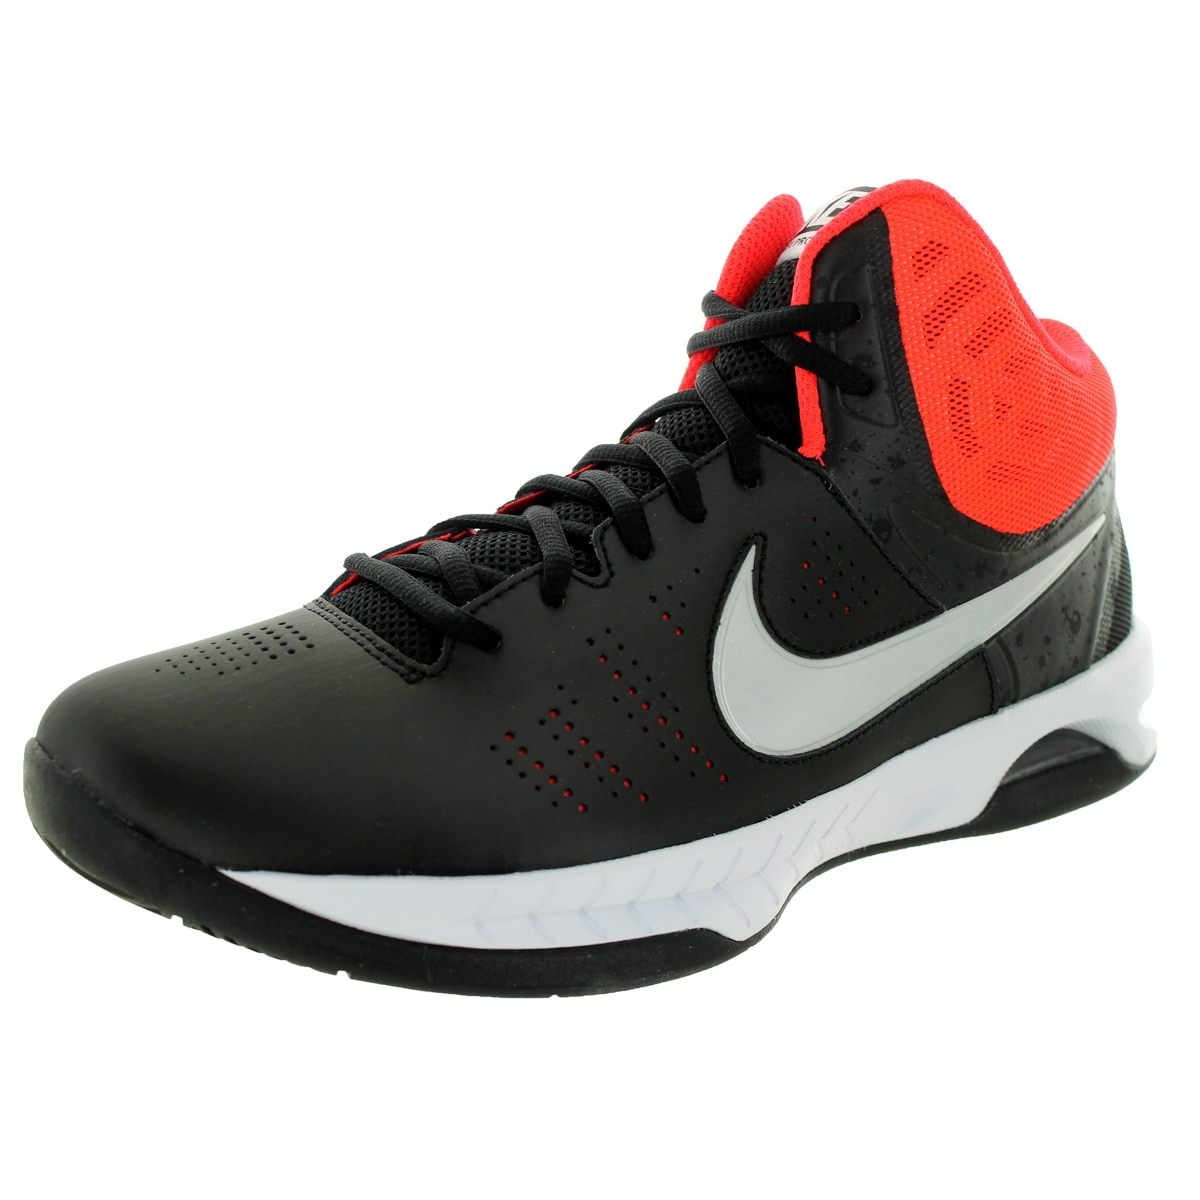 best loved e4977 65dd3 Shop Nike Men s Air Visi Pro VI Black Mesh Synthetic Basketball Shoes -  Free Shipping Today - Overstock - 12146627